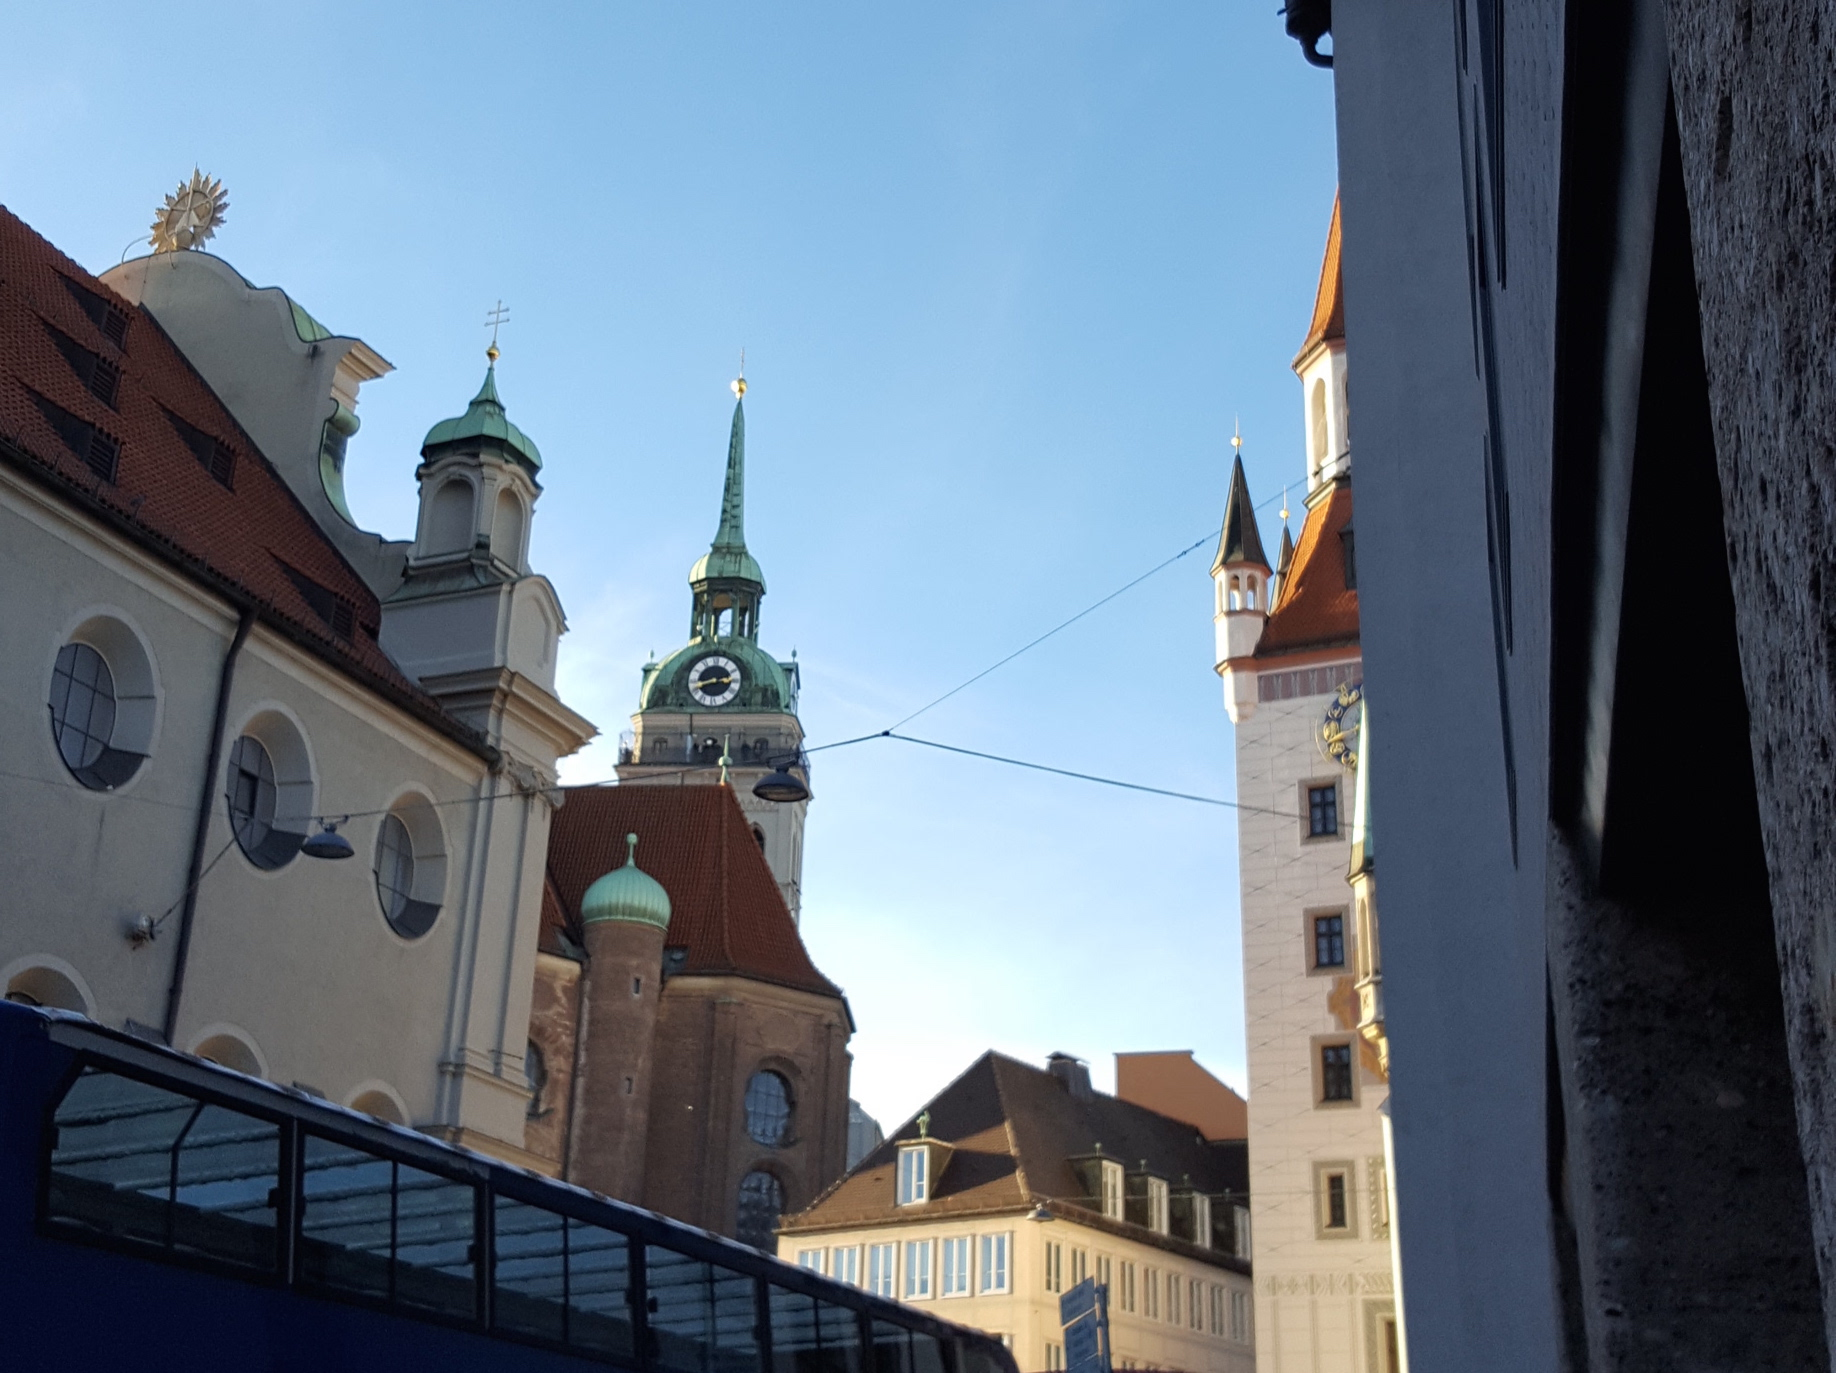 Alter_Peter_Tagestipp_muenchen